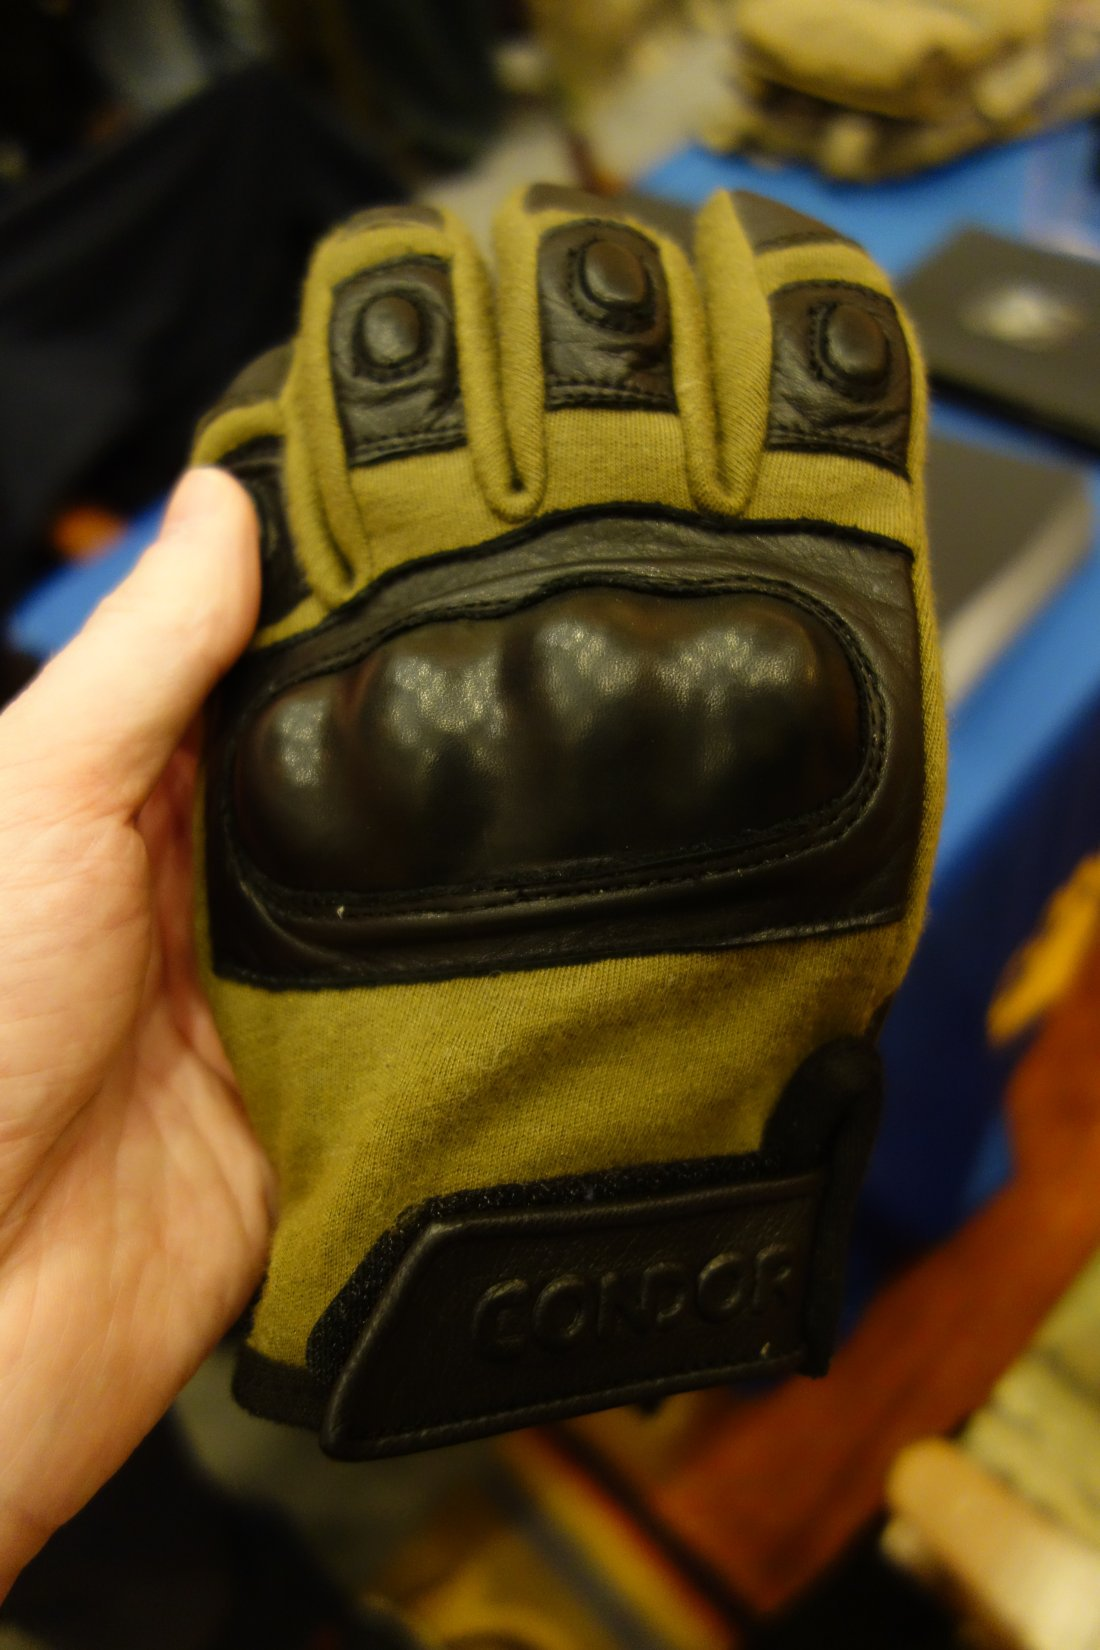 Condor Outdoor Syncro Tactical Glove Tactical Shooting Gloves with HK251 Touchtec Nanotechnology Leather Andy Chen SHOT Show 2013 David Crane DefenseReview.com DR 6 Condor Syncro Hard Knuckle Tactical Glove with TouchTec Nanotechnology: Touchscreen Friendly Tactical Shooting Gloves Allow You to Operate Smartphone and Tablet Computer! (Video!)